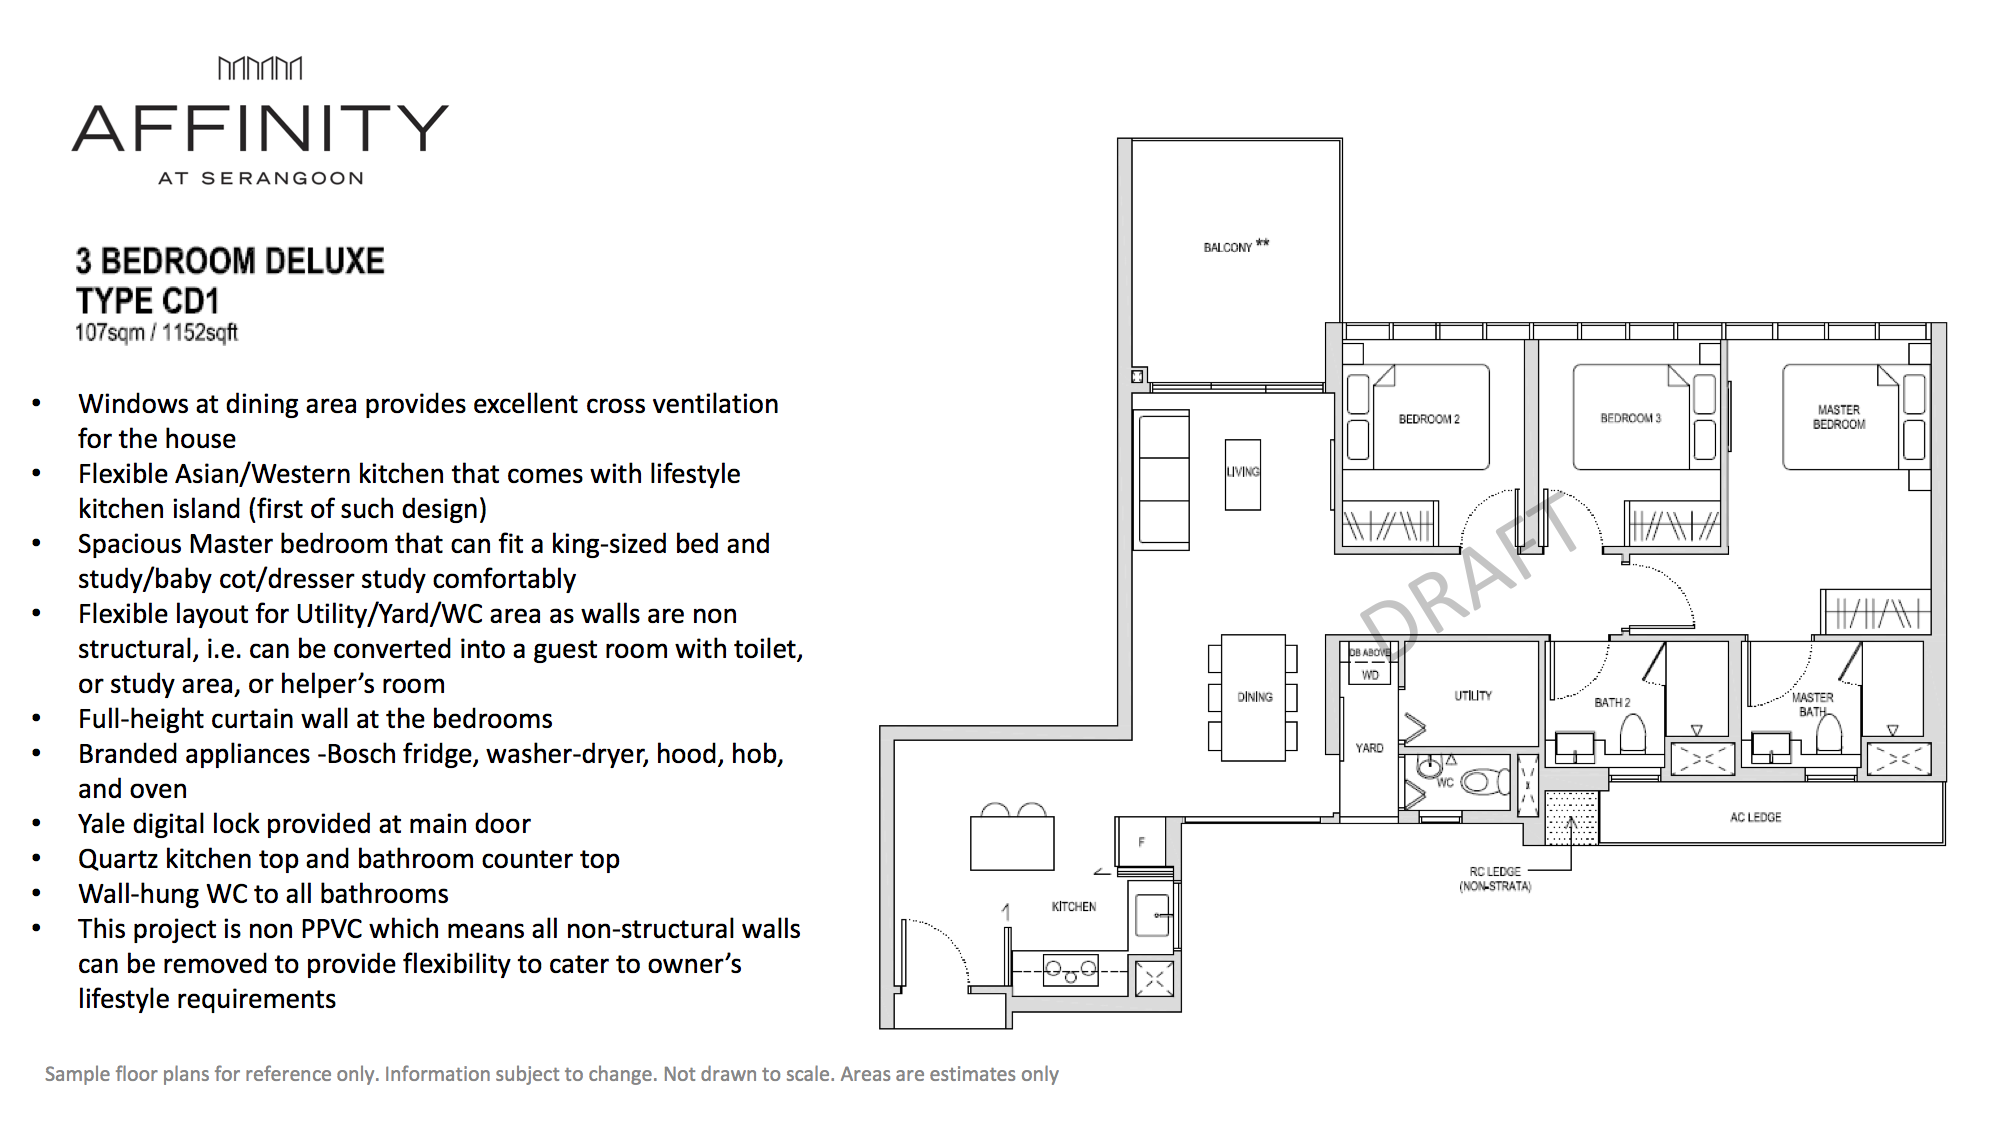 Affinity At Serangoon Floor Plan 3 Bedroom Deluxe